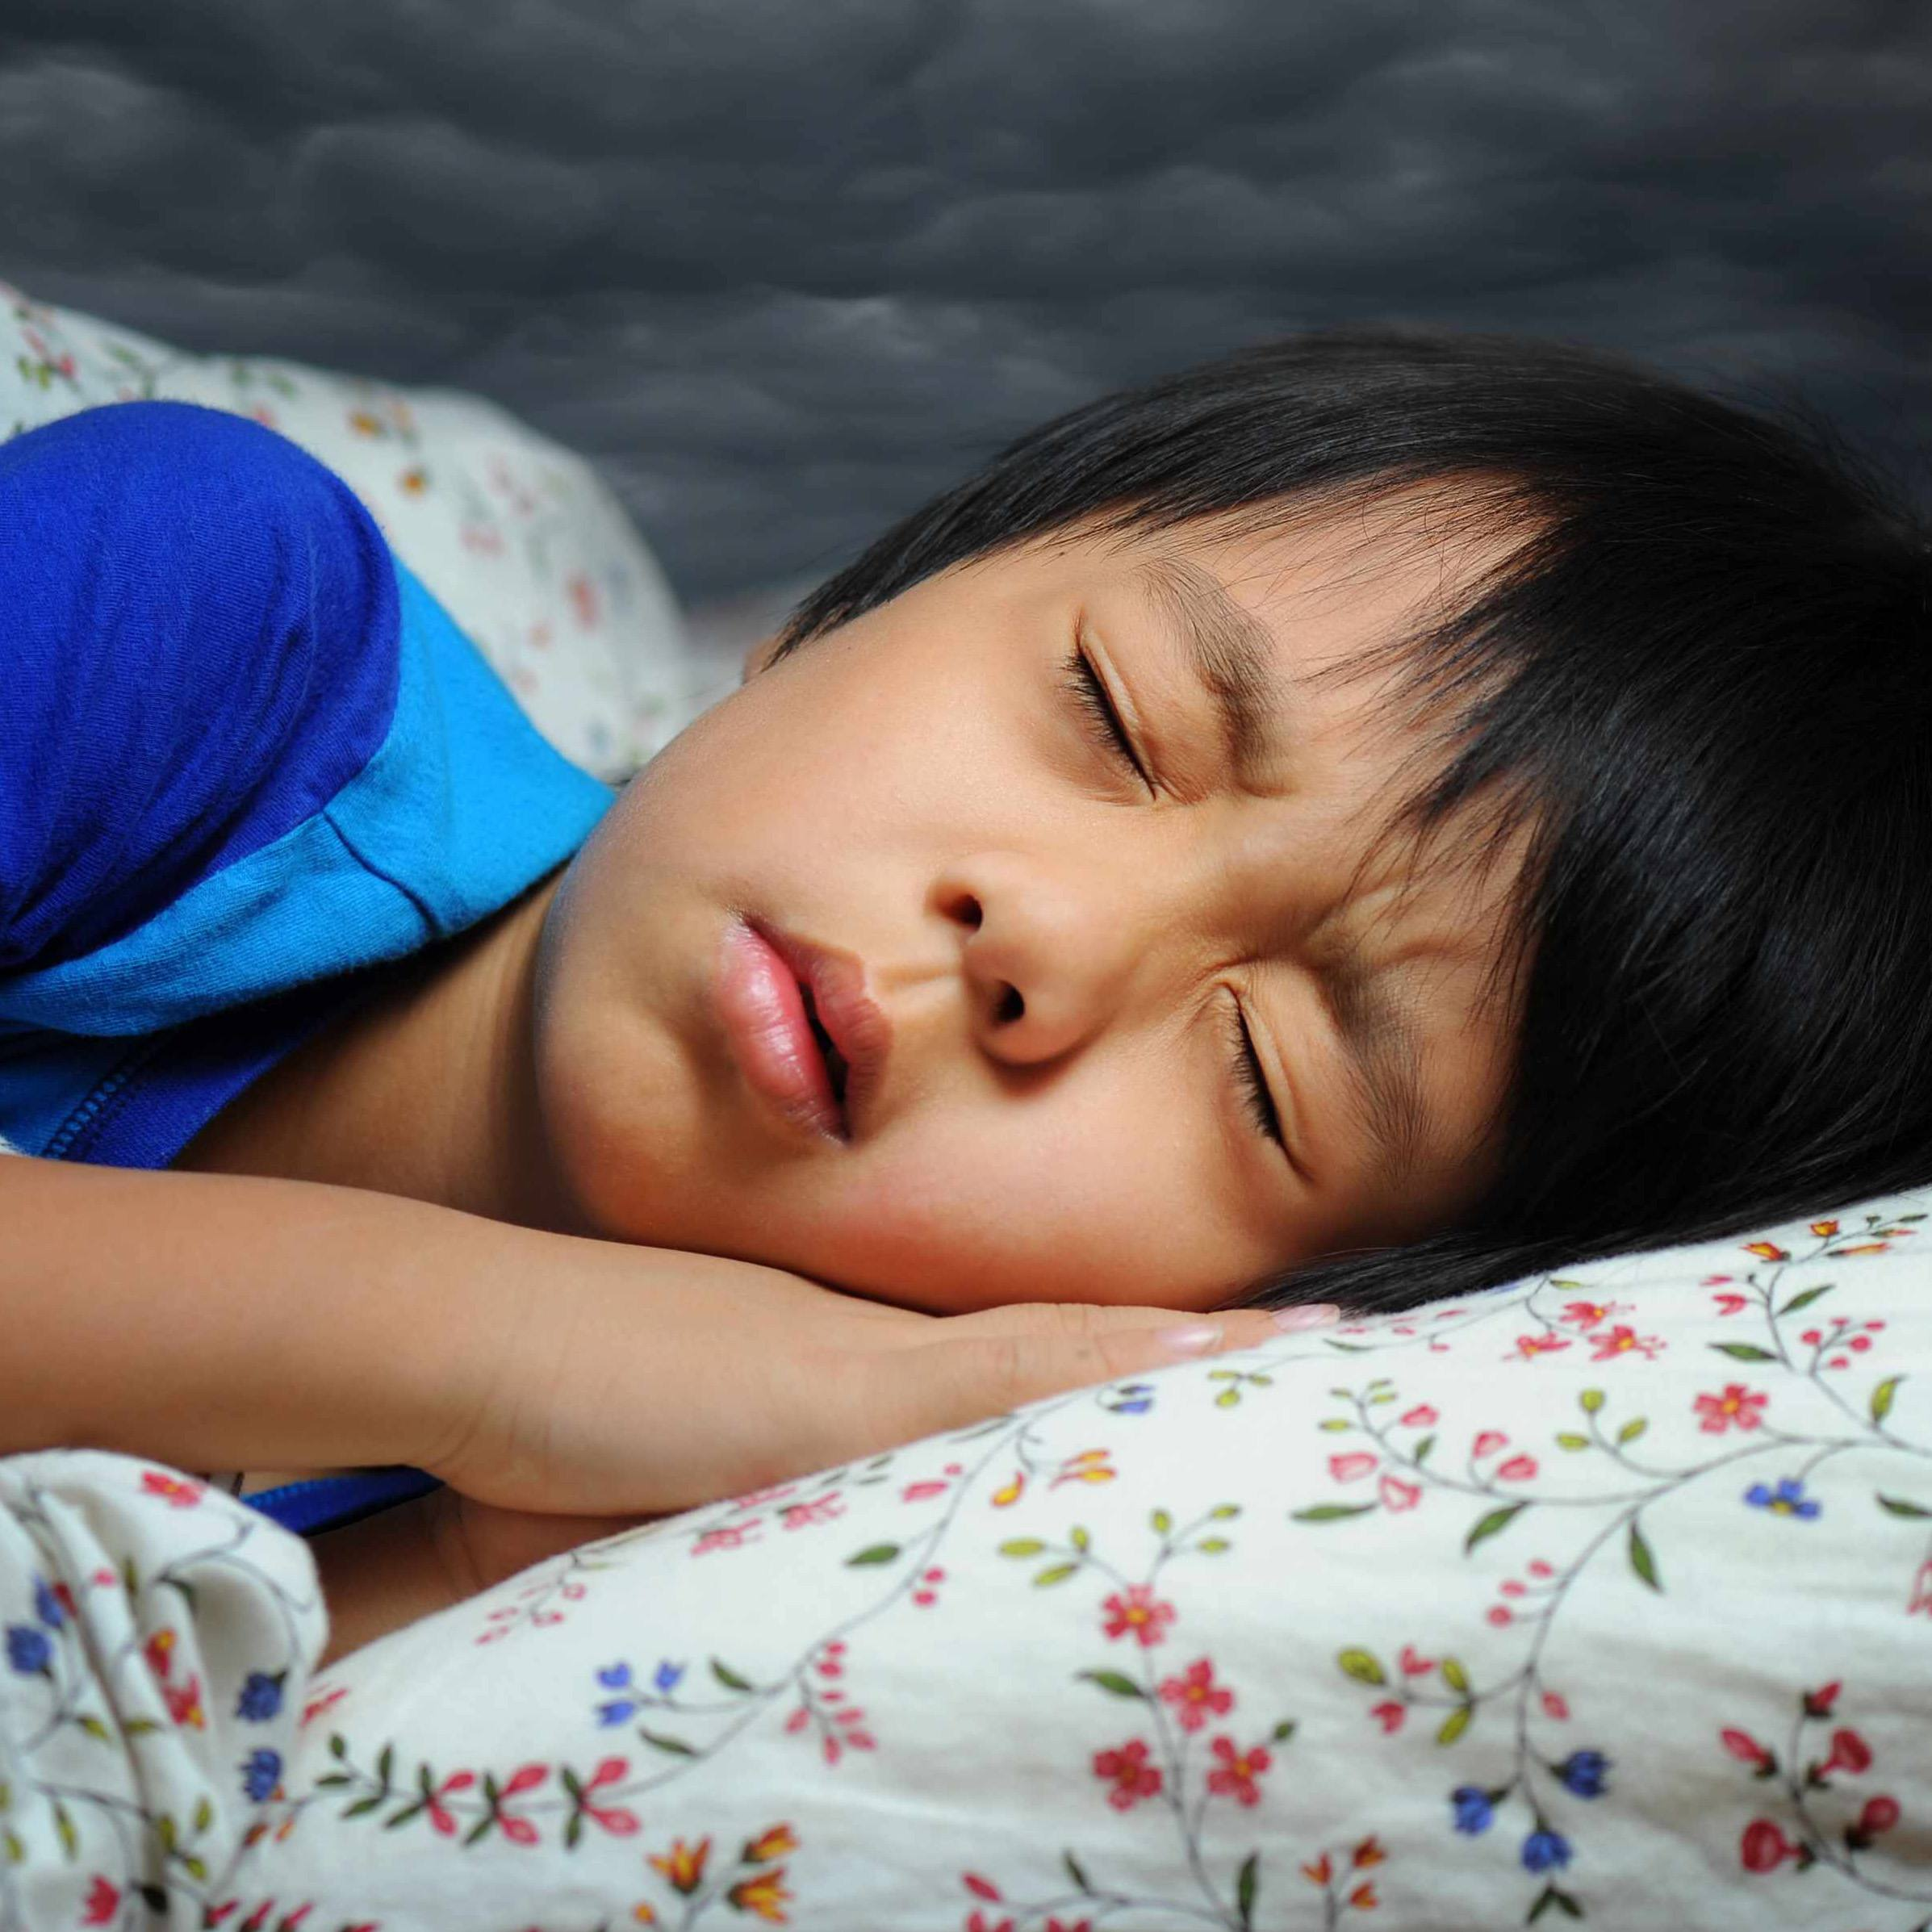 young child is sleeping bed and having a possible nightmare dream